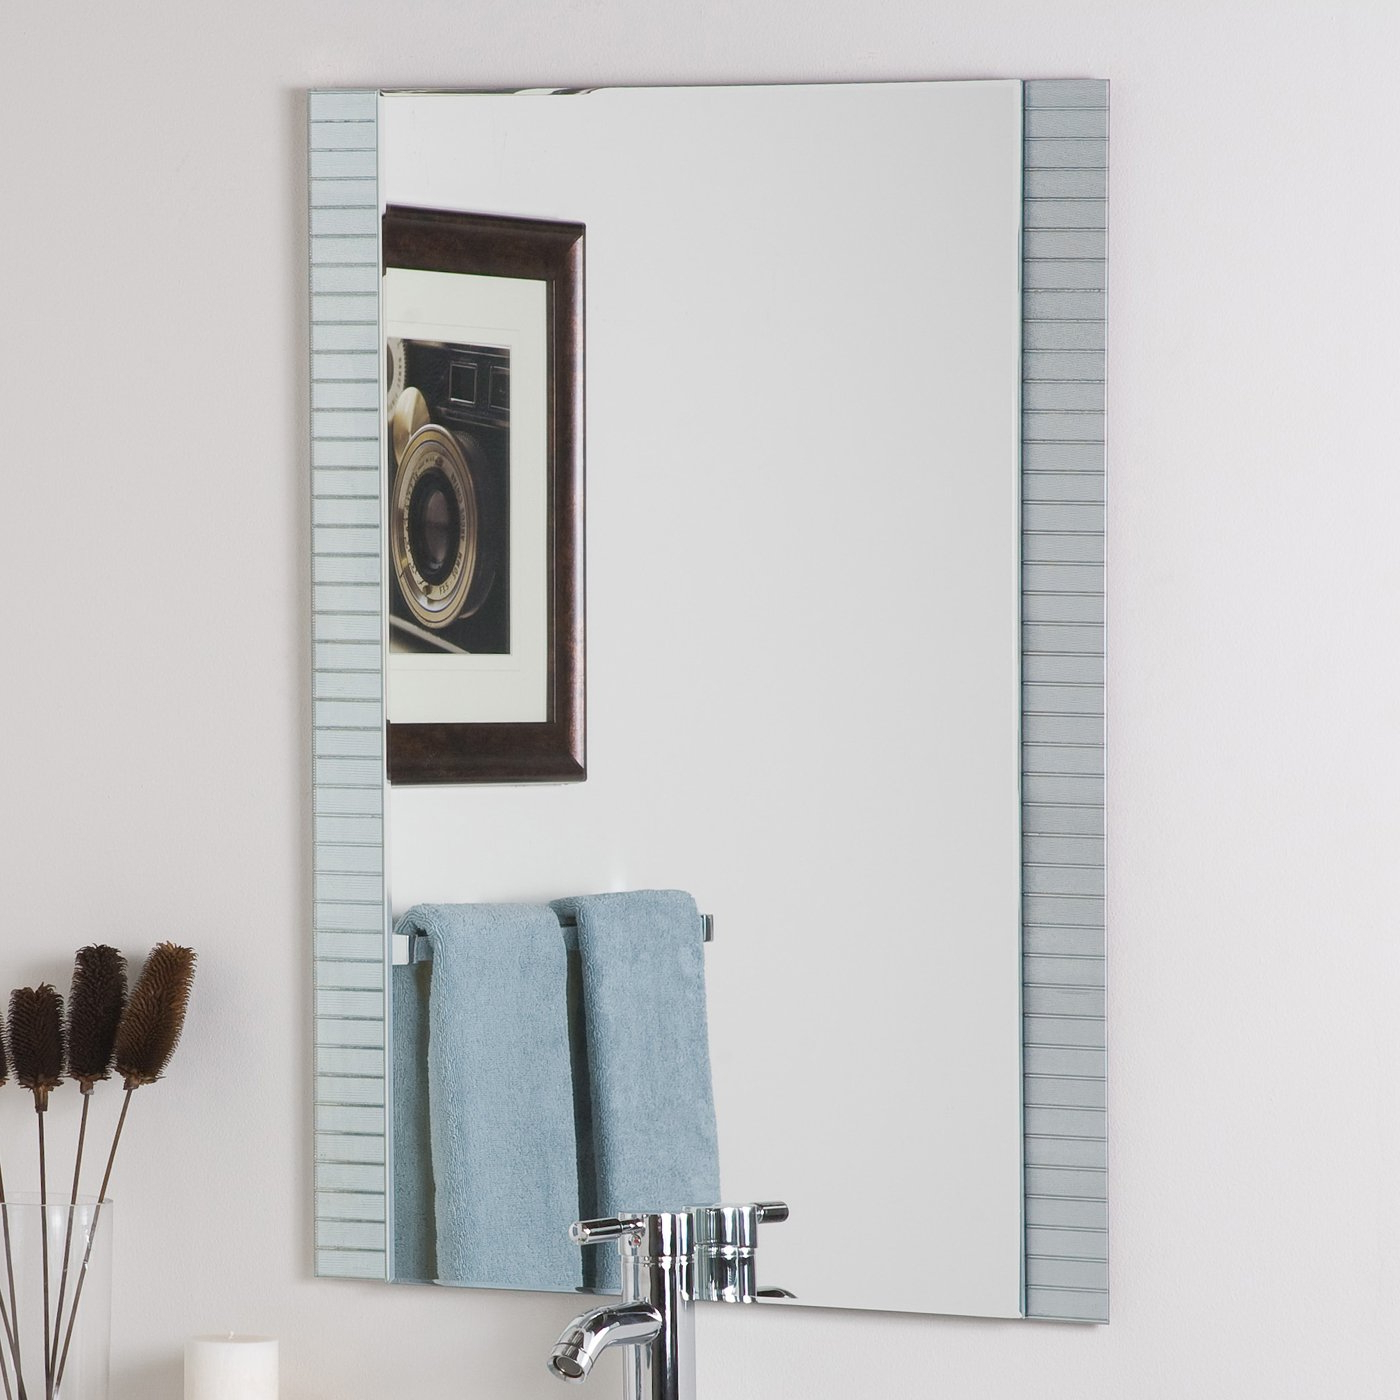 Most Popular Horizontal Wall Mirrors With Regard To Decor Wonderland Horizontal Lines Wall Mirror (View 11 of 20)